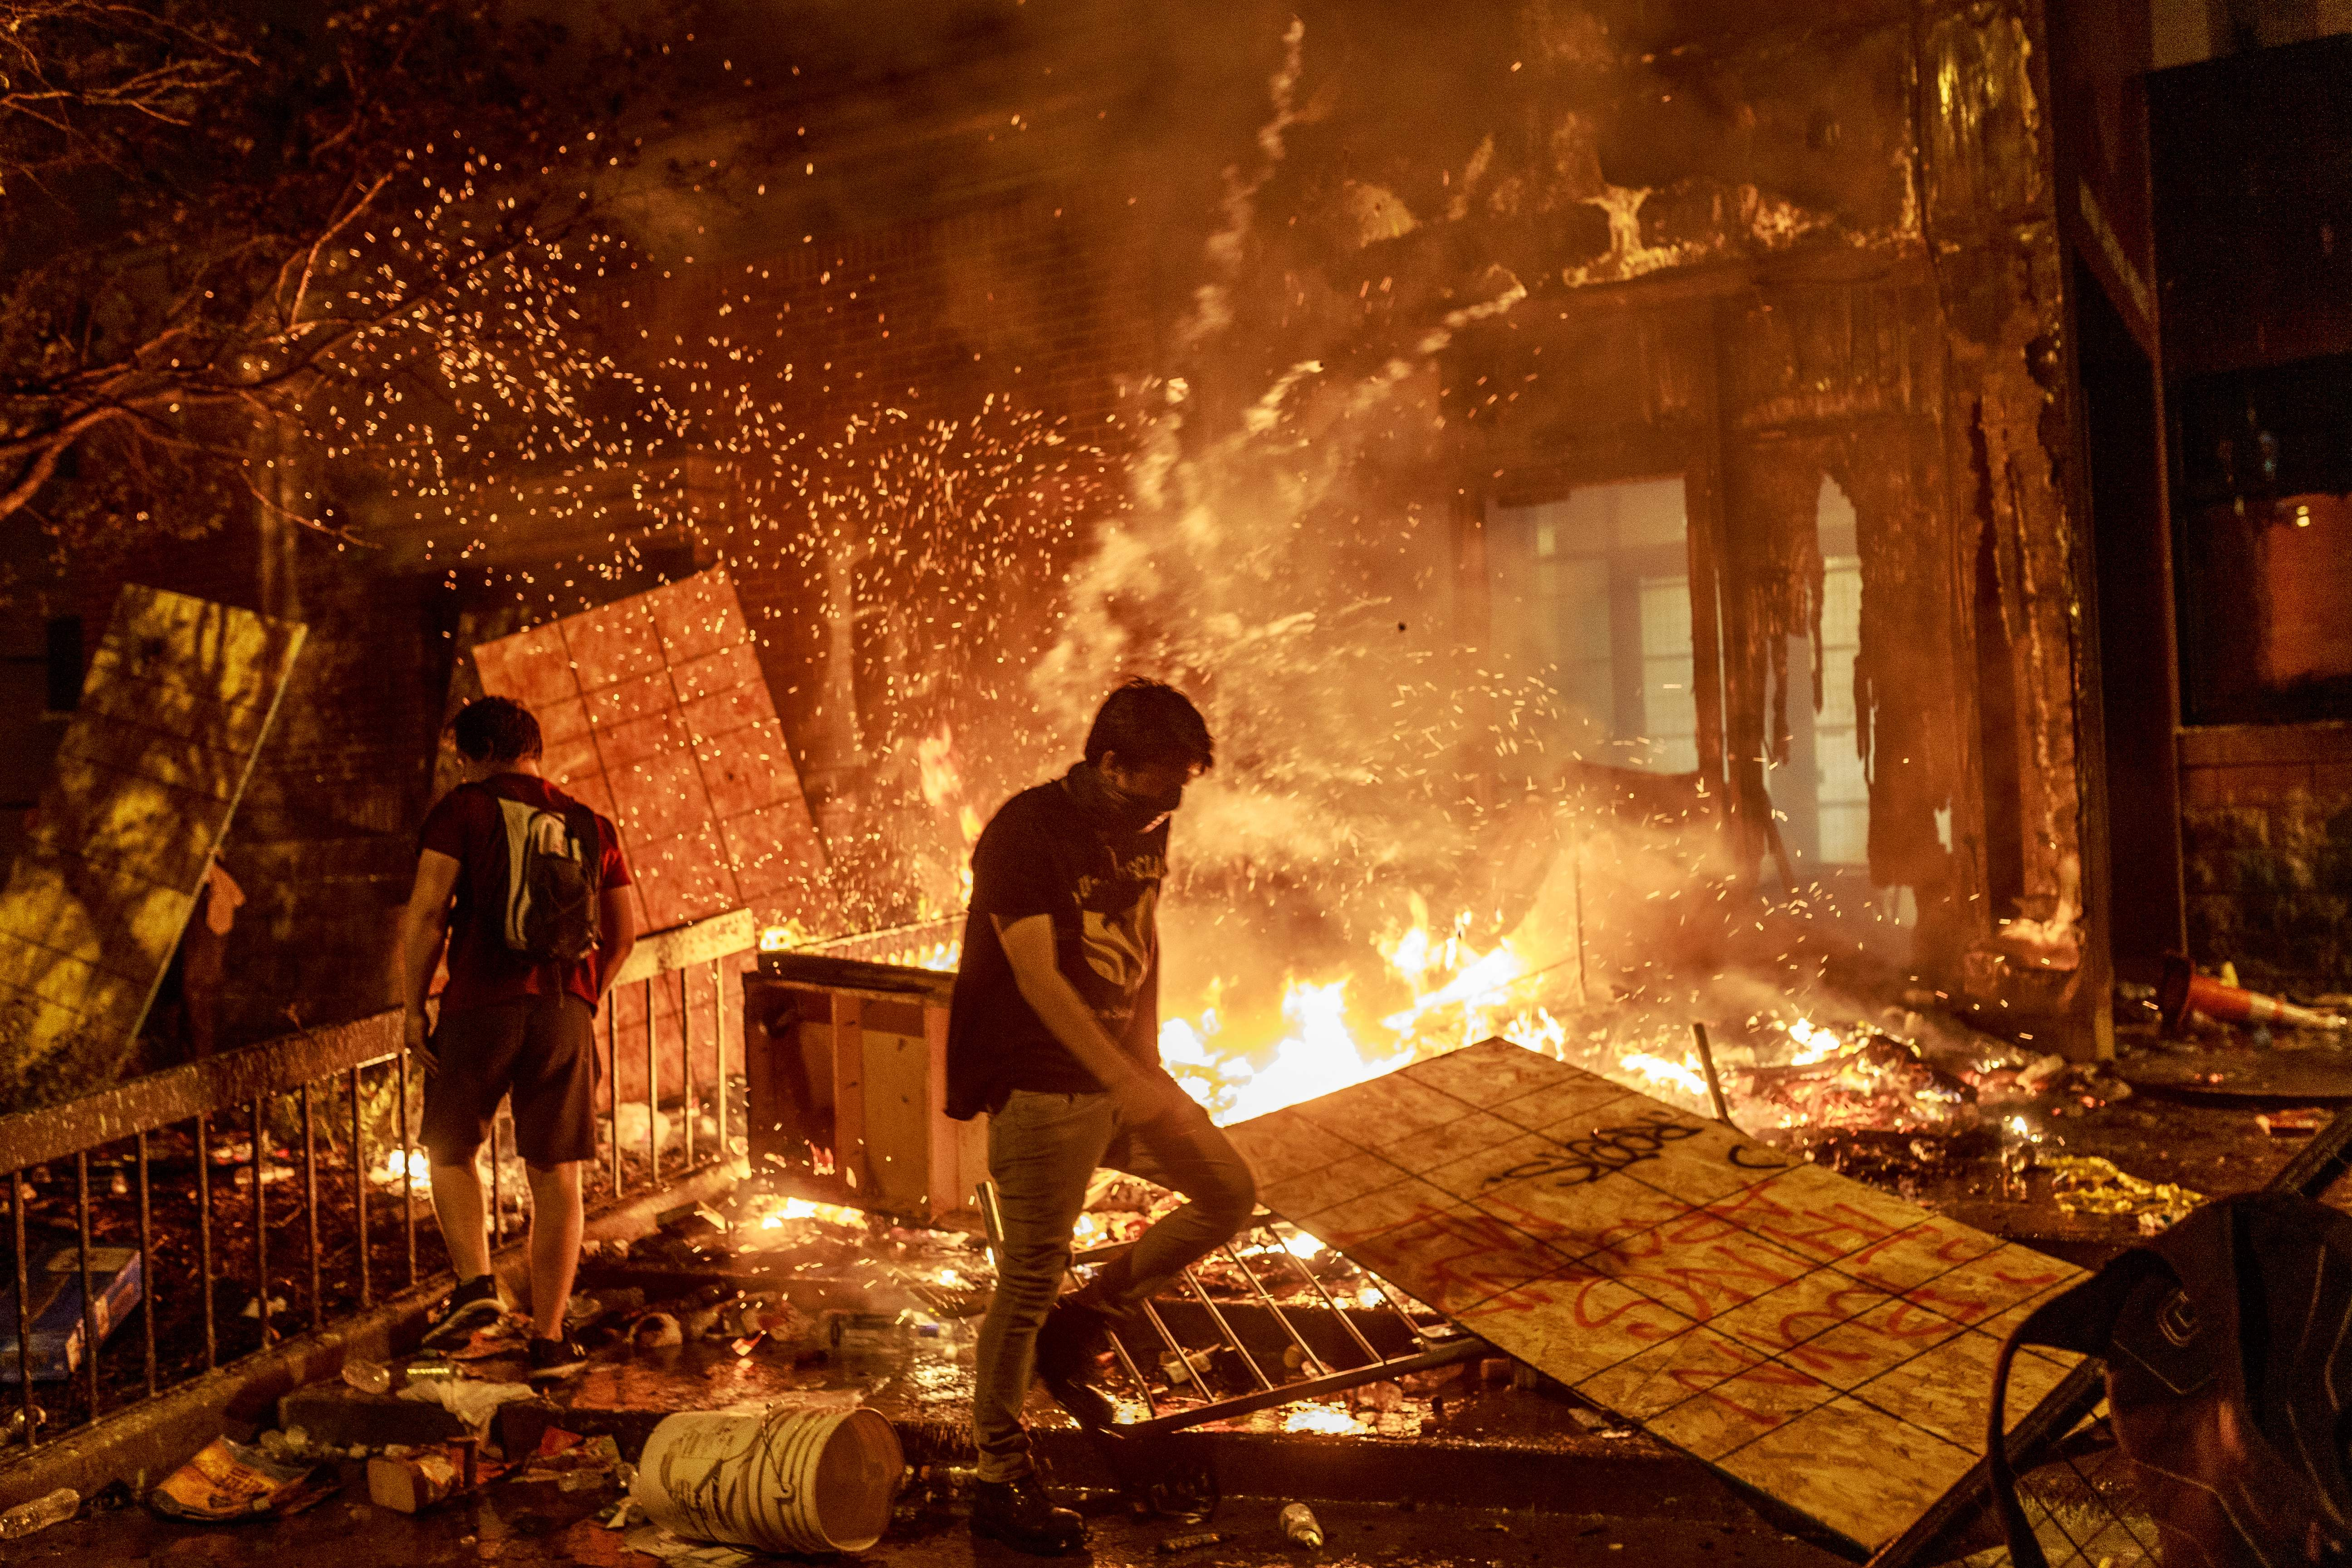 Protesters walk past burning debris outside the Third Police Precinct on May 28, 2020 in Minneapolis, Minnesota, during a protest over the death of George Floyd. (Photo by KEREM YUCEL/AFP via Getty Images)